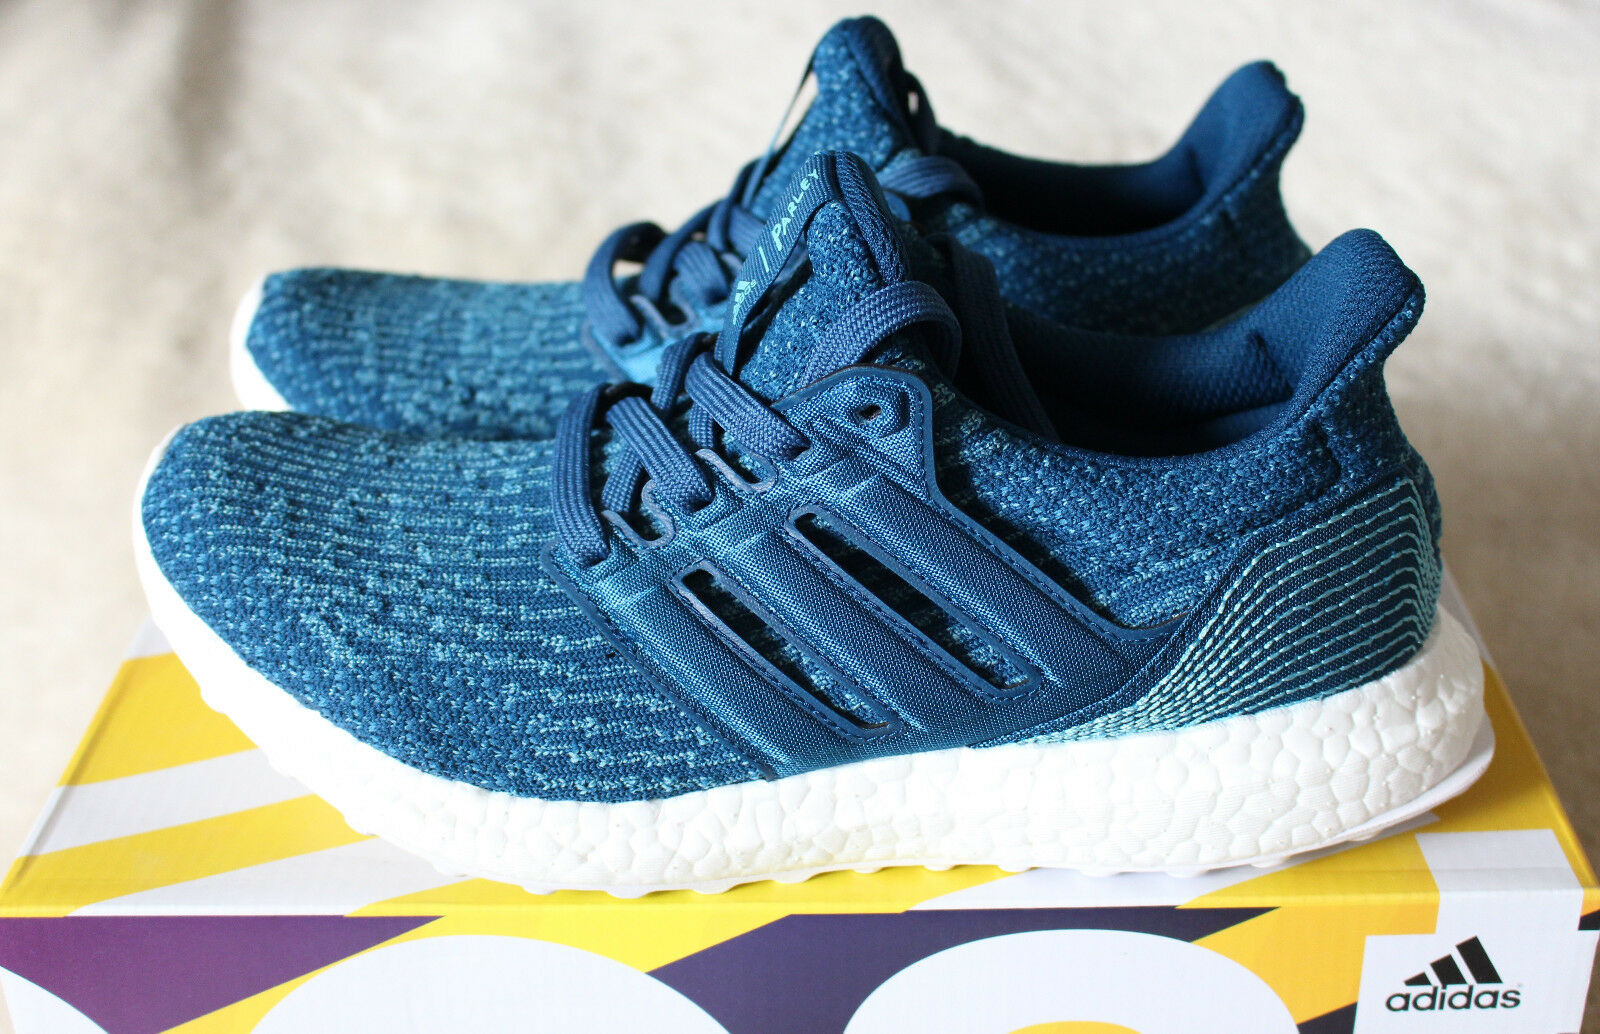 New Adidas Ultra Boost 3.0 Parley Ocean Trainers Limited Carbon Blue US 8